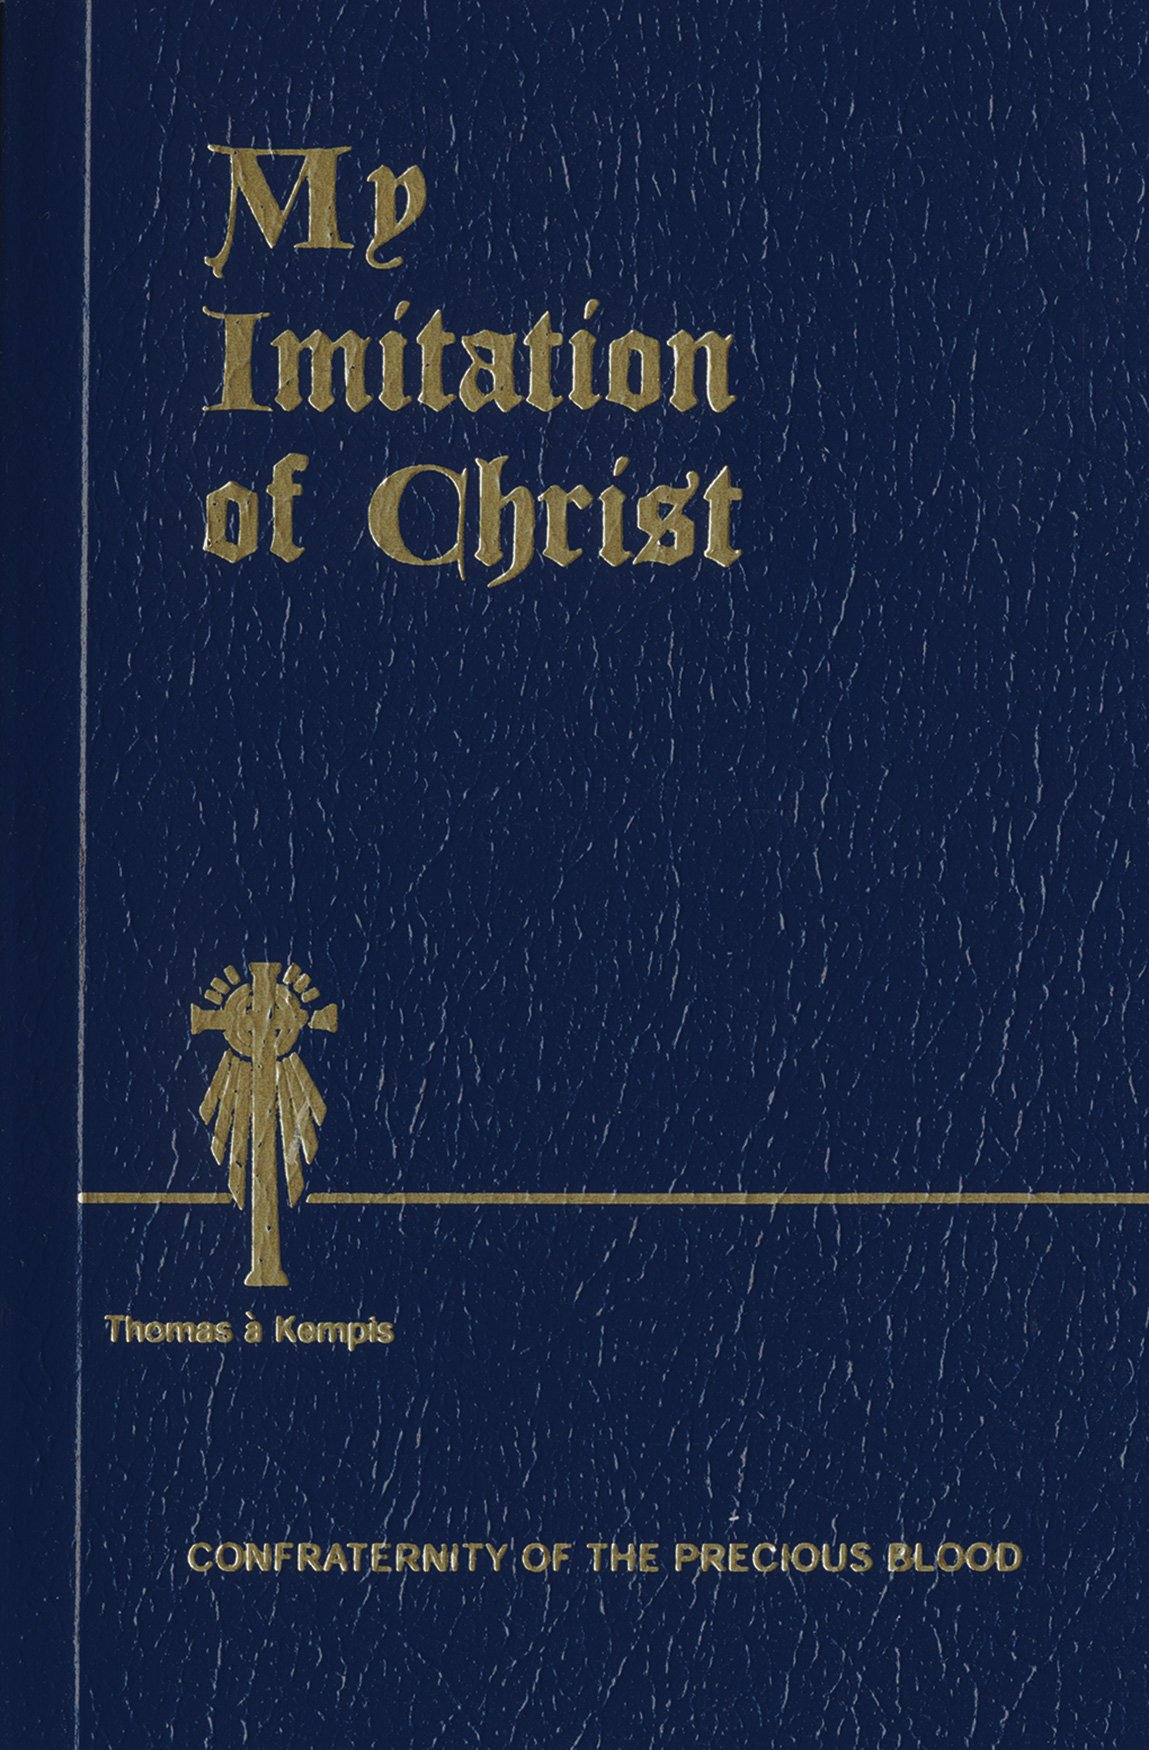 Image result for Imitation of Christ, Book, pictures